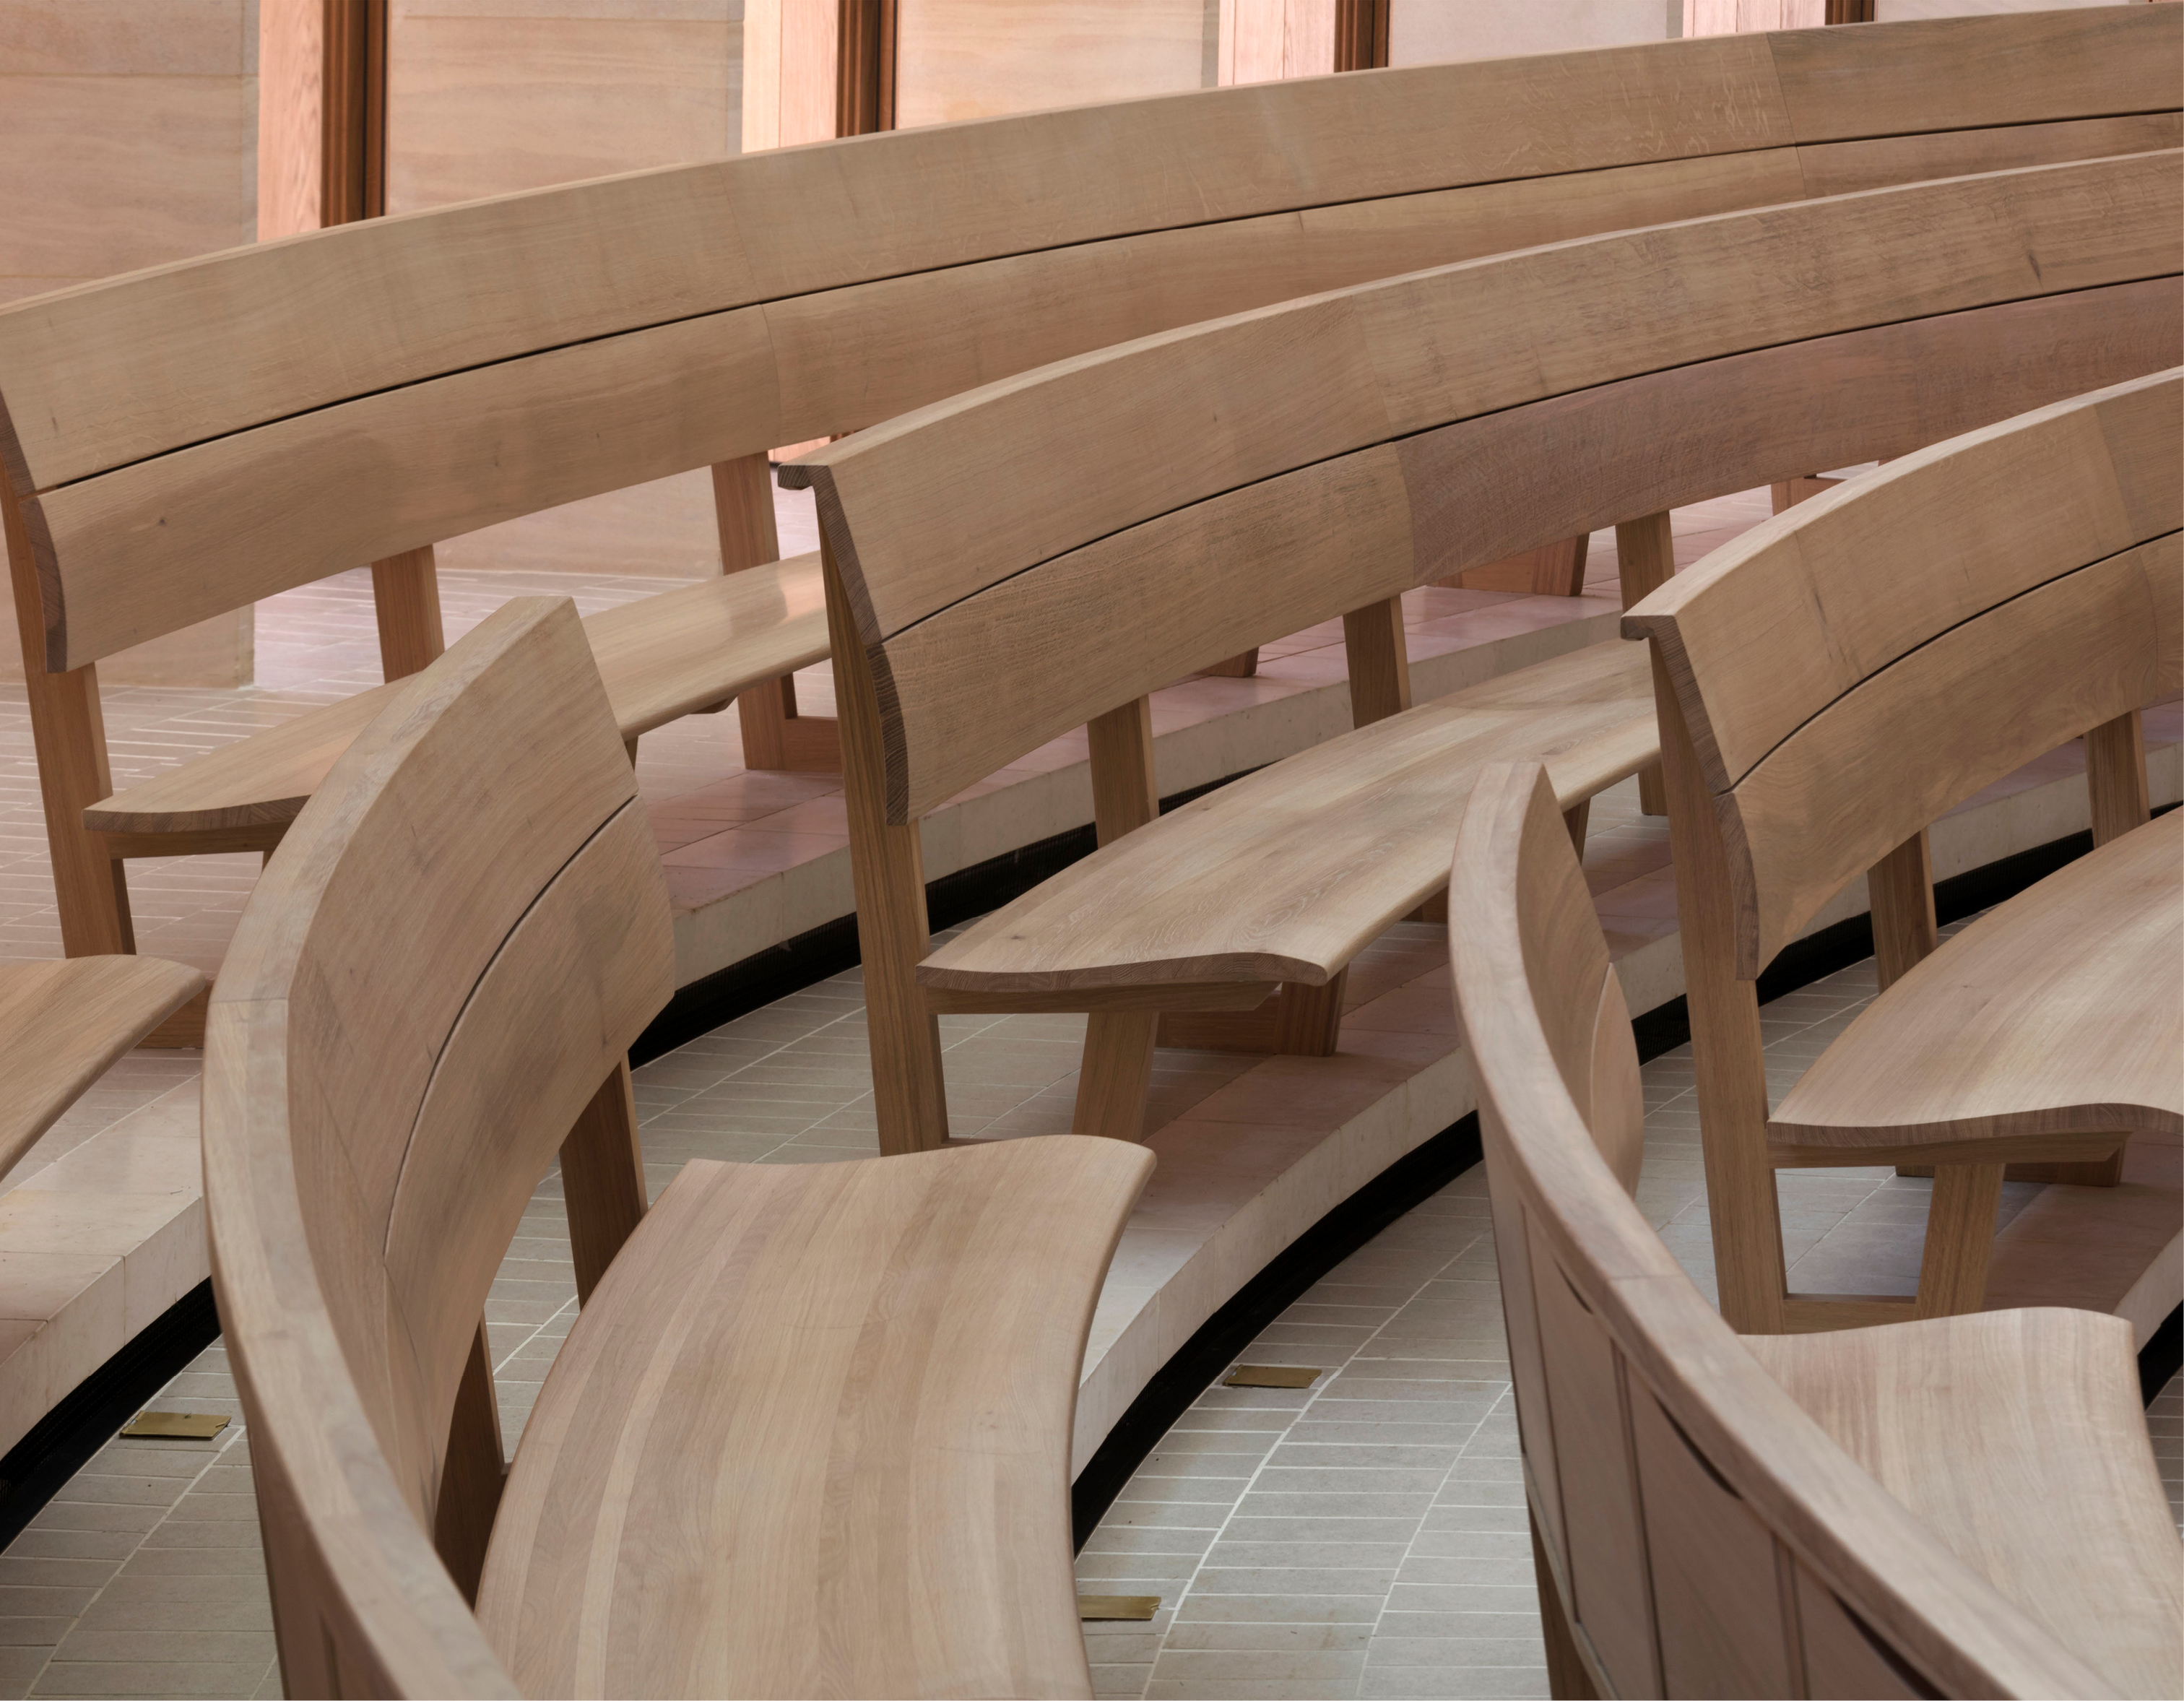 <p><span>The curved oak benches are carefully profiled to give a comfortable sitting position. © Nick Kane</span></p>